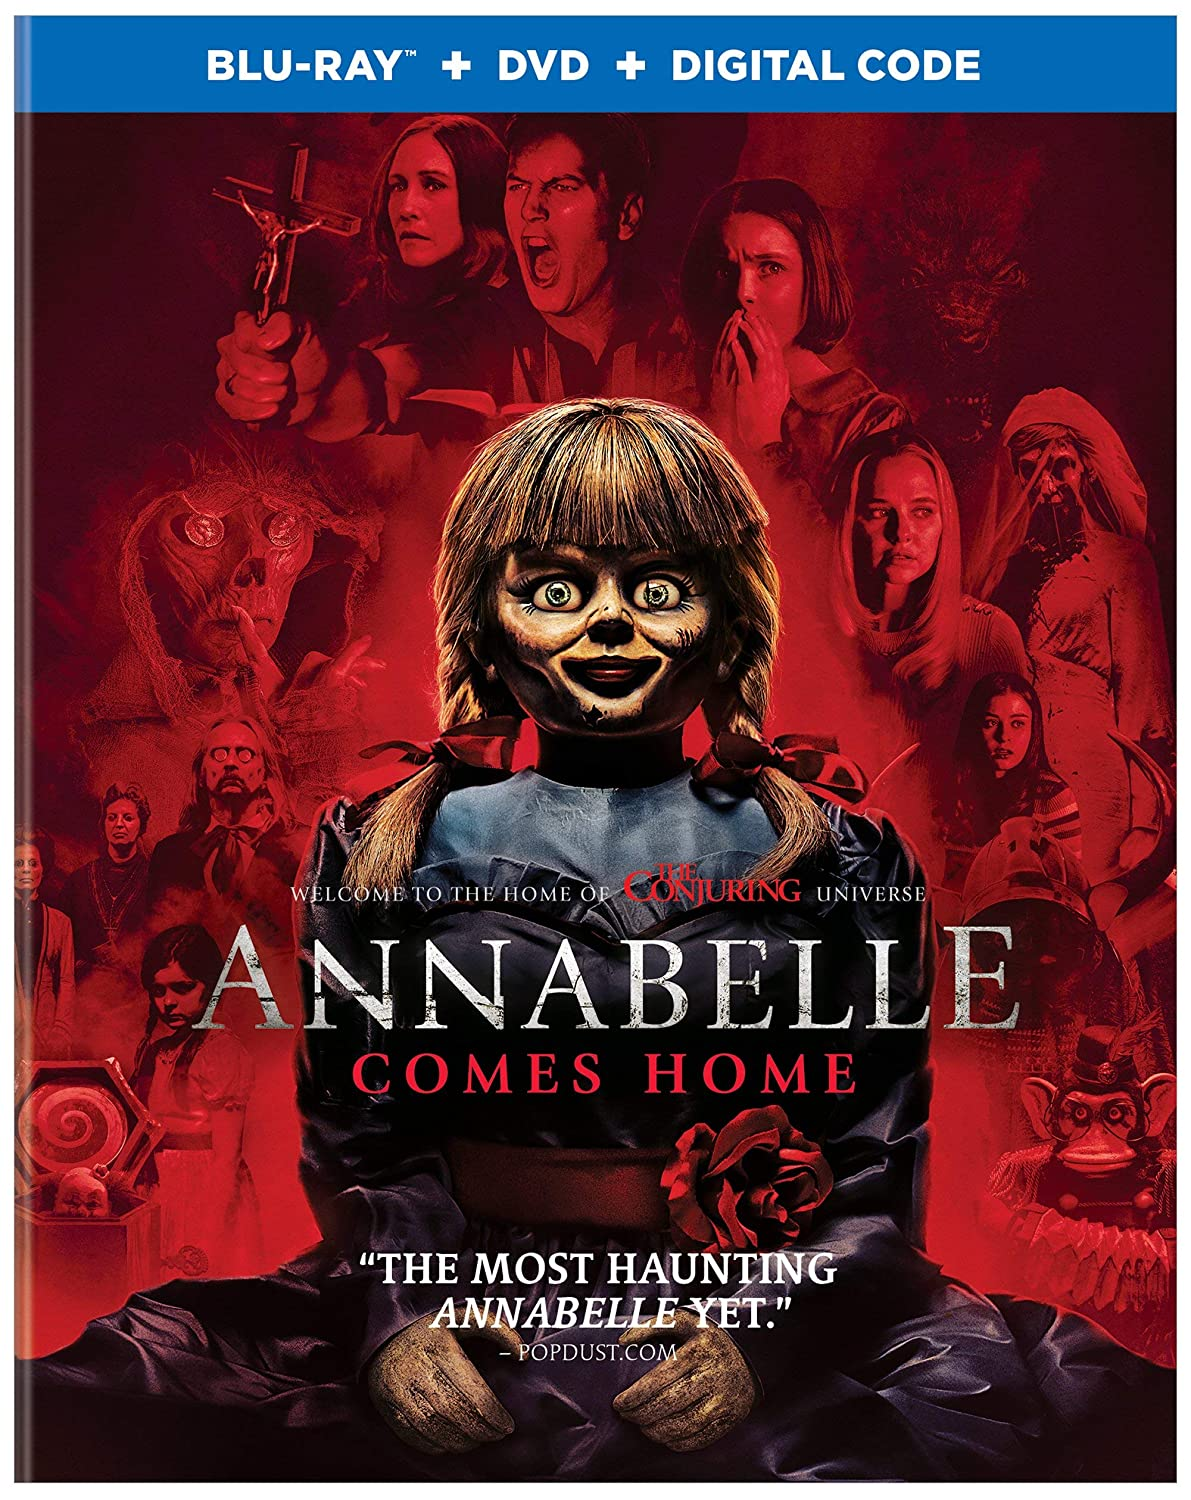 Amazon com: Annabelle Comes Home (Blu-ray + DVD + Digital